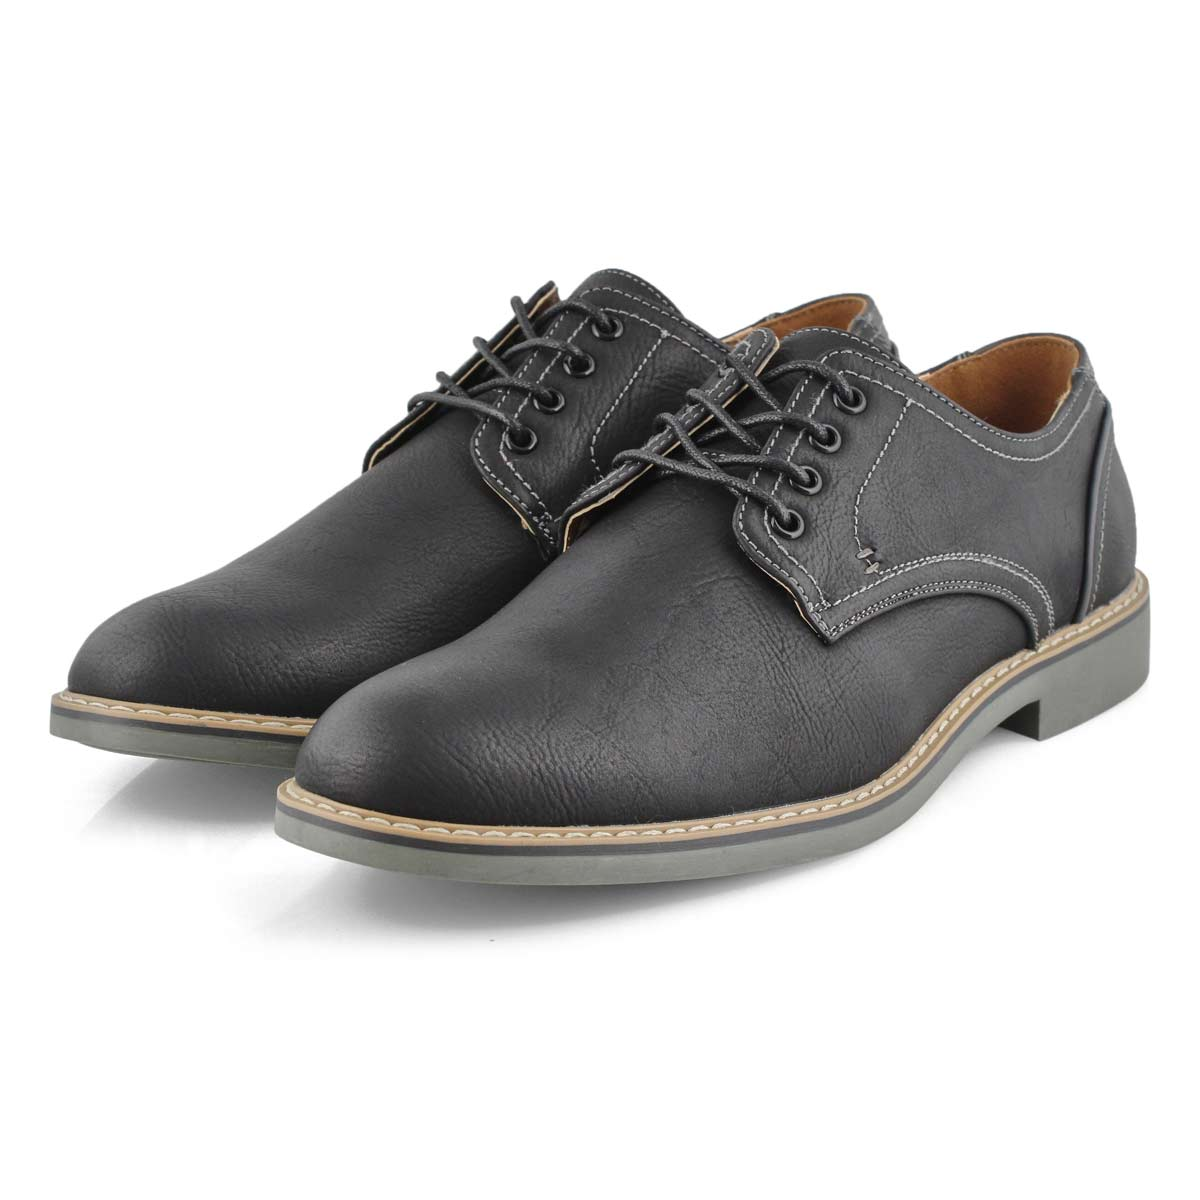 Mns Jamie black lace up casual oxford